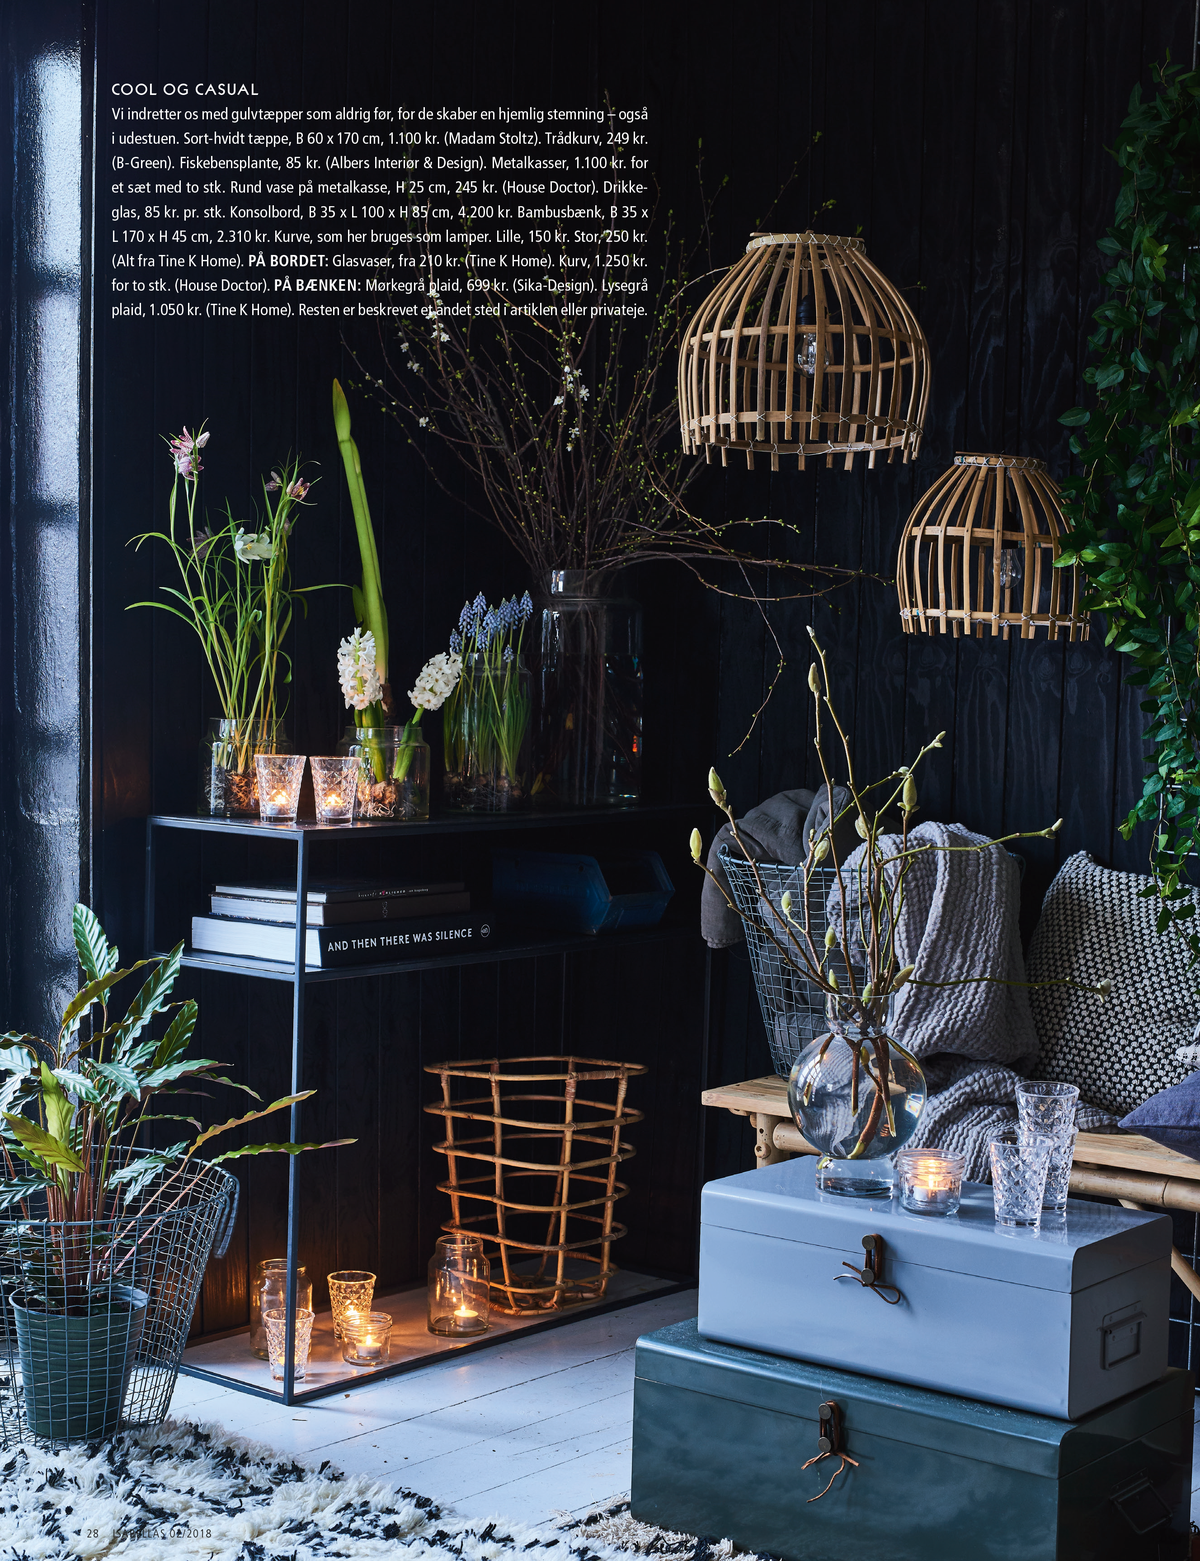 Pernille Albers styling for Isabellas magazine - tinekhome lamp shades and metal consol table